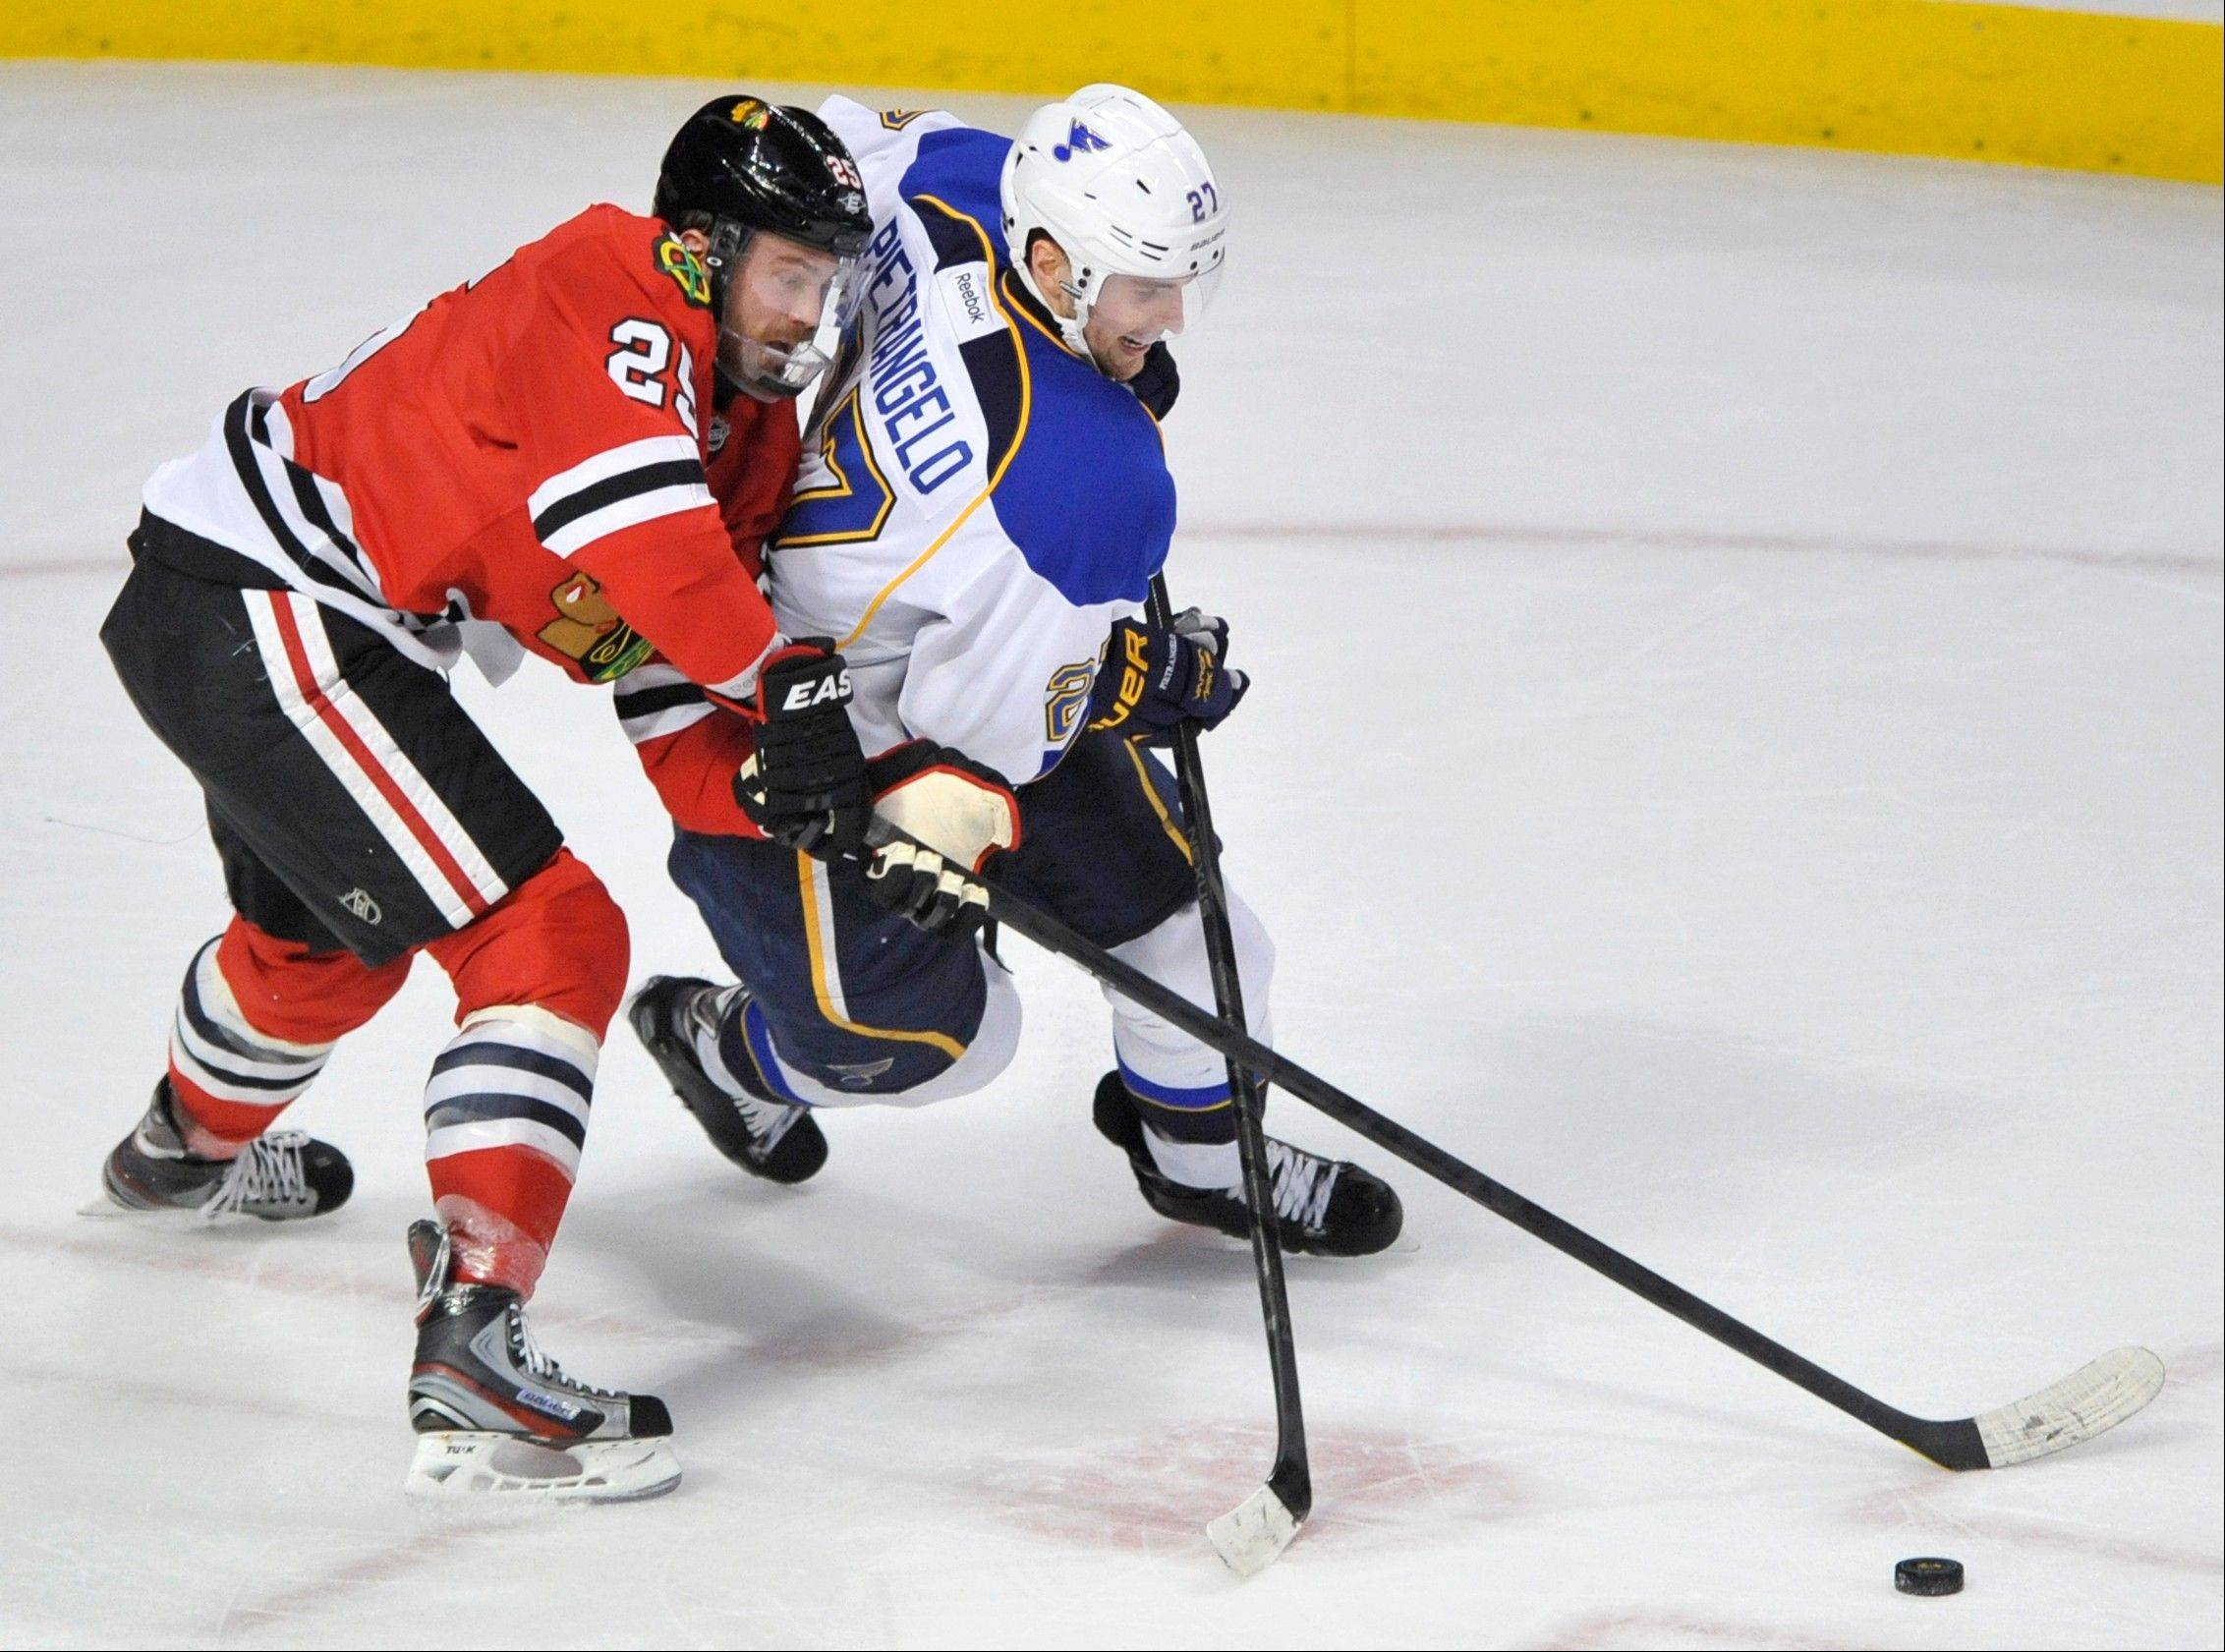 St. Louis Blues' Alex Pietrangelo, right, and Chicago Blackhawks' Viktor Stalberg, of Sweden, race for the puck during overtime in an NHL hockey game in Chicago, Thursday, April 4, 2013. St. Louis won 4-3 in a shootout.